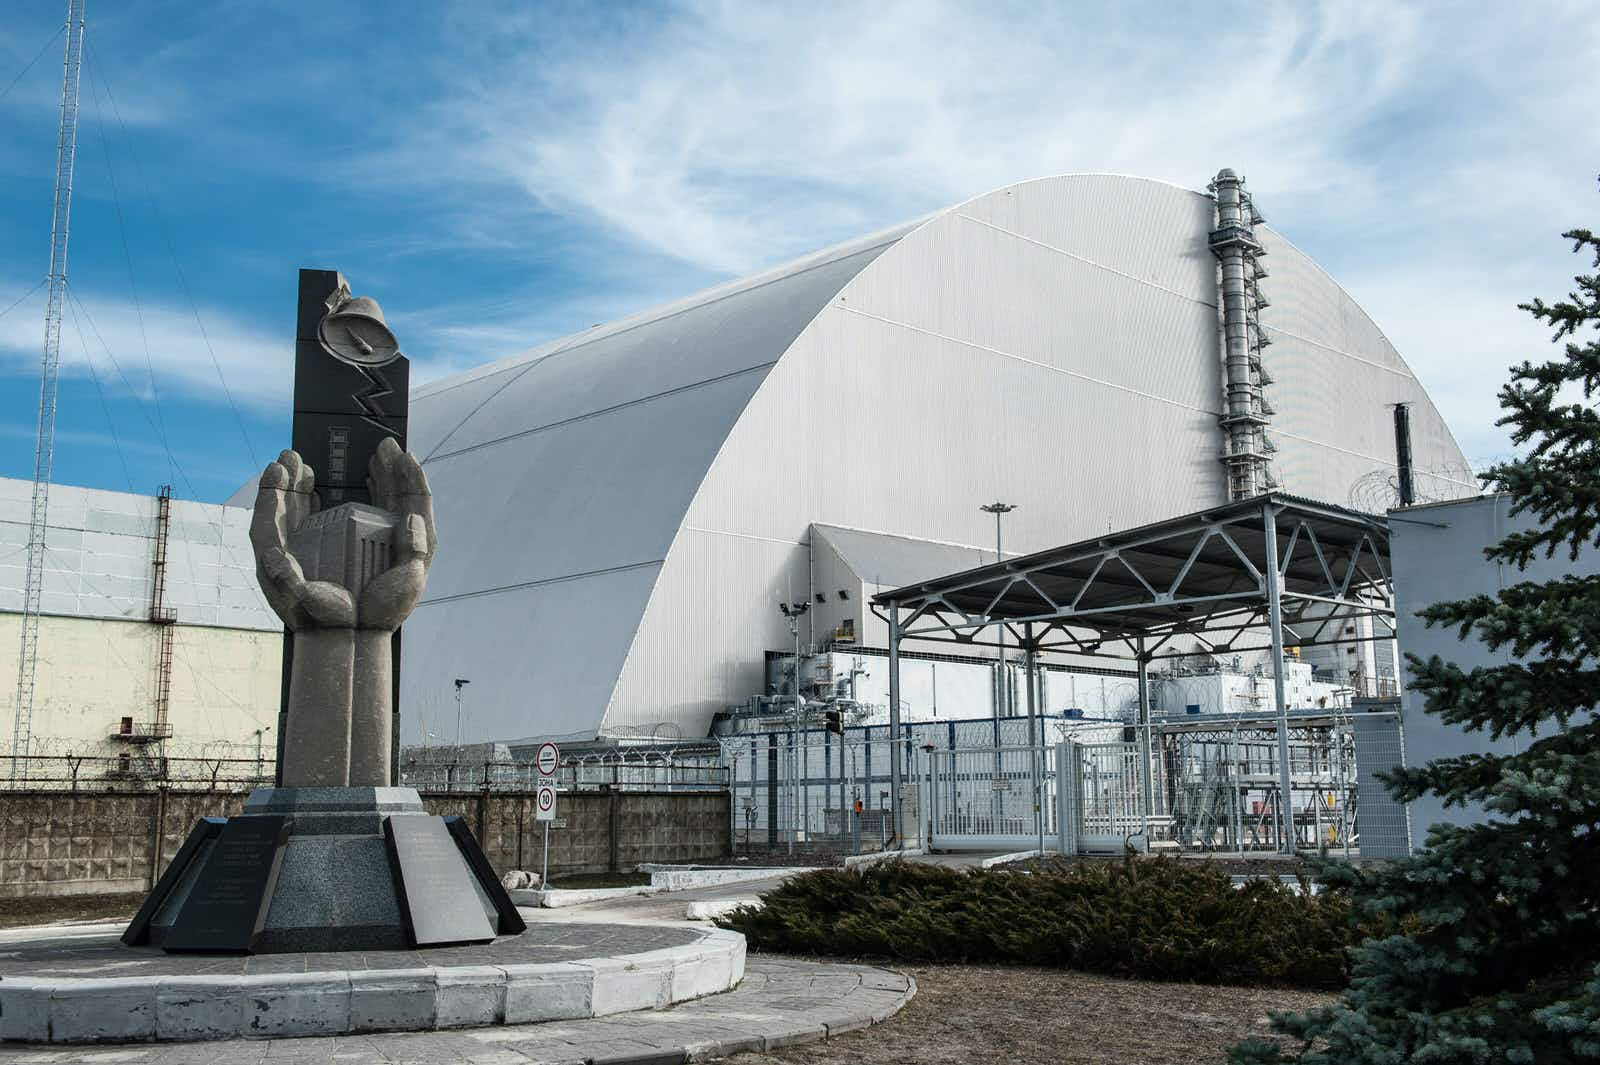 The New Safe Confinement structure around the remains of Reactor 4 at Chernobyl © Olga Vladimirova / Shutterstock